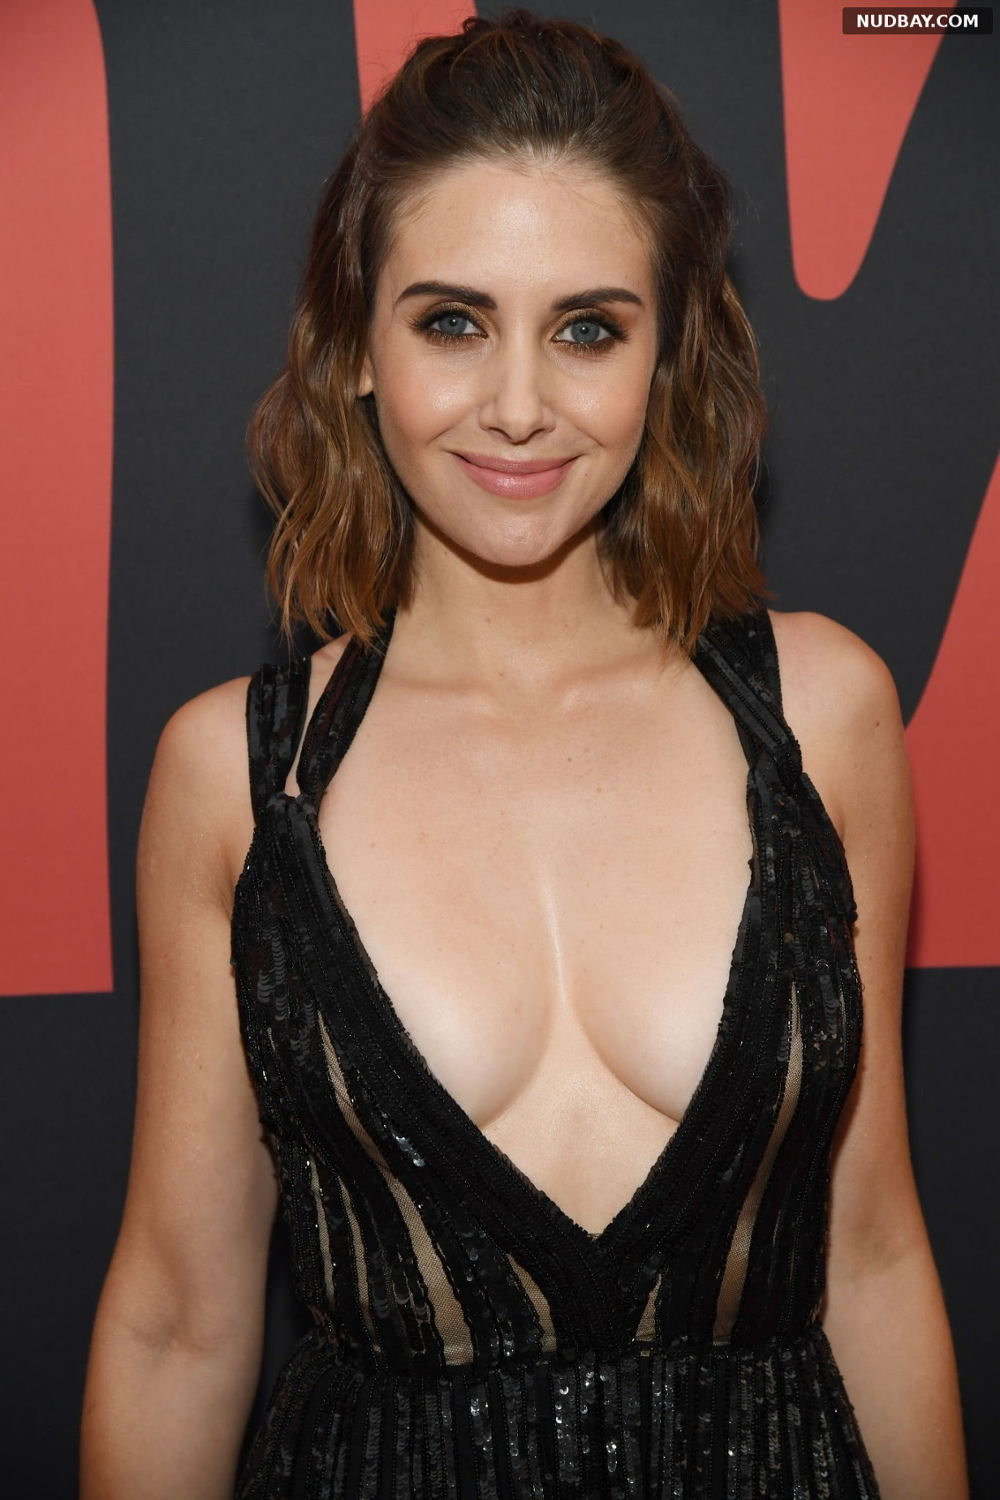 Alison Brie nude at MTV VMAs in Newark New Jersey Aug 26 2019